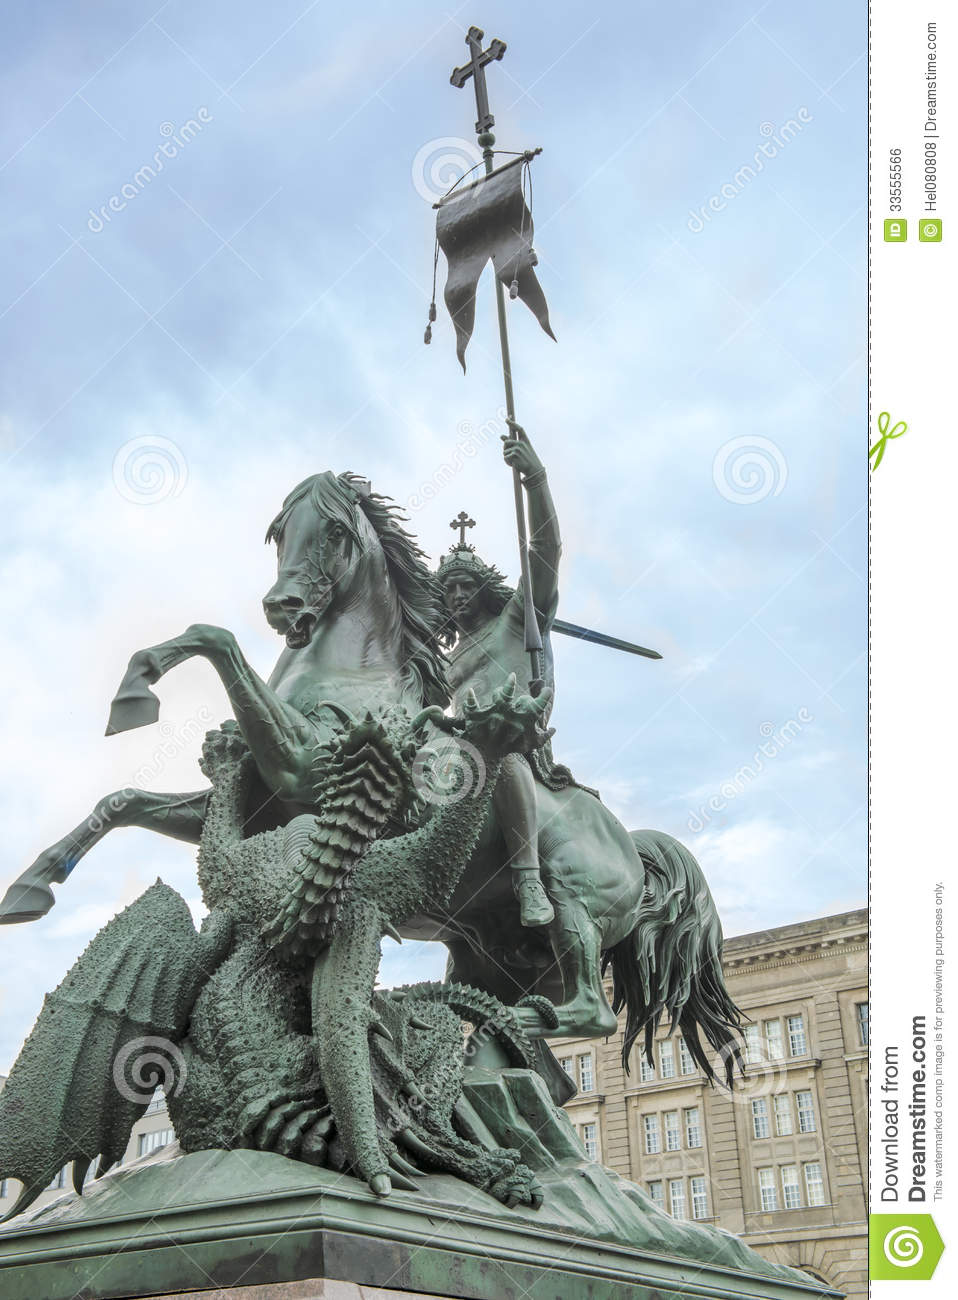 Saint george and the dragon story